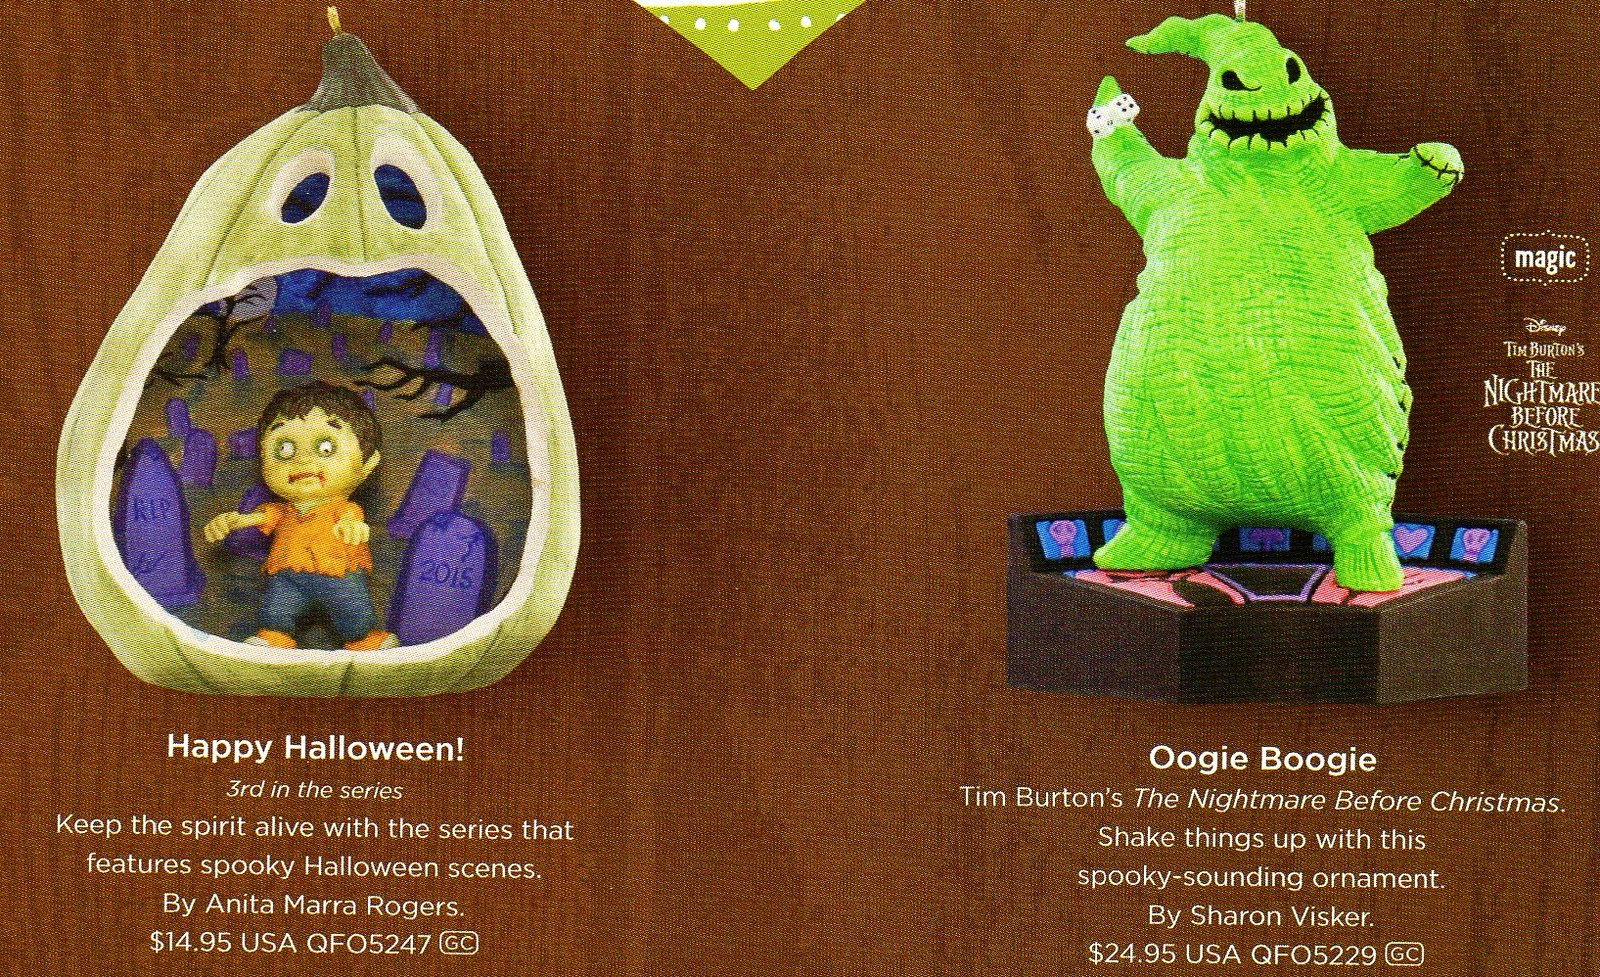 hallmark halloween 2015 1 - Hallmark Halloween Decorations